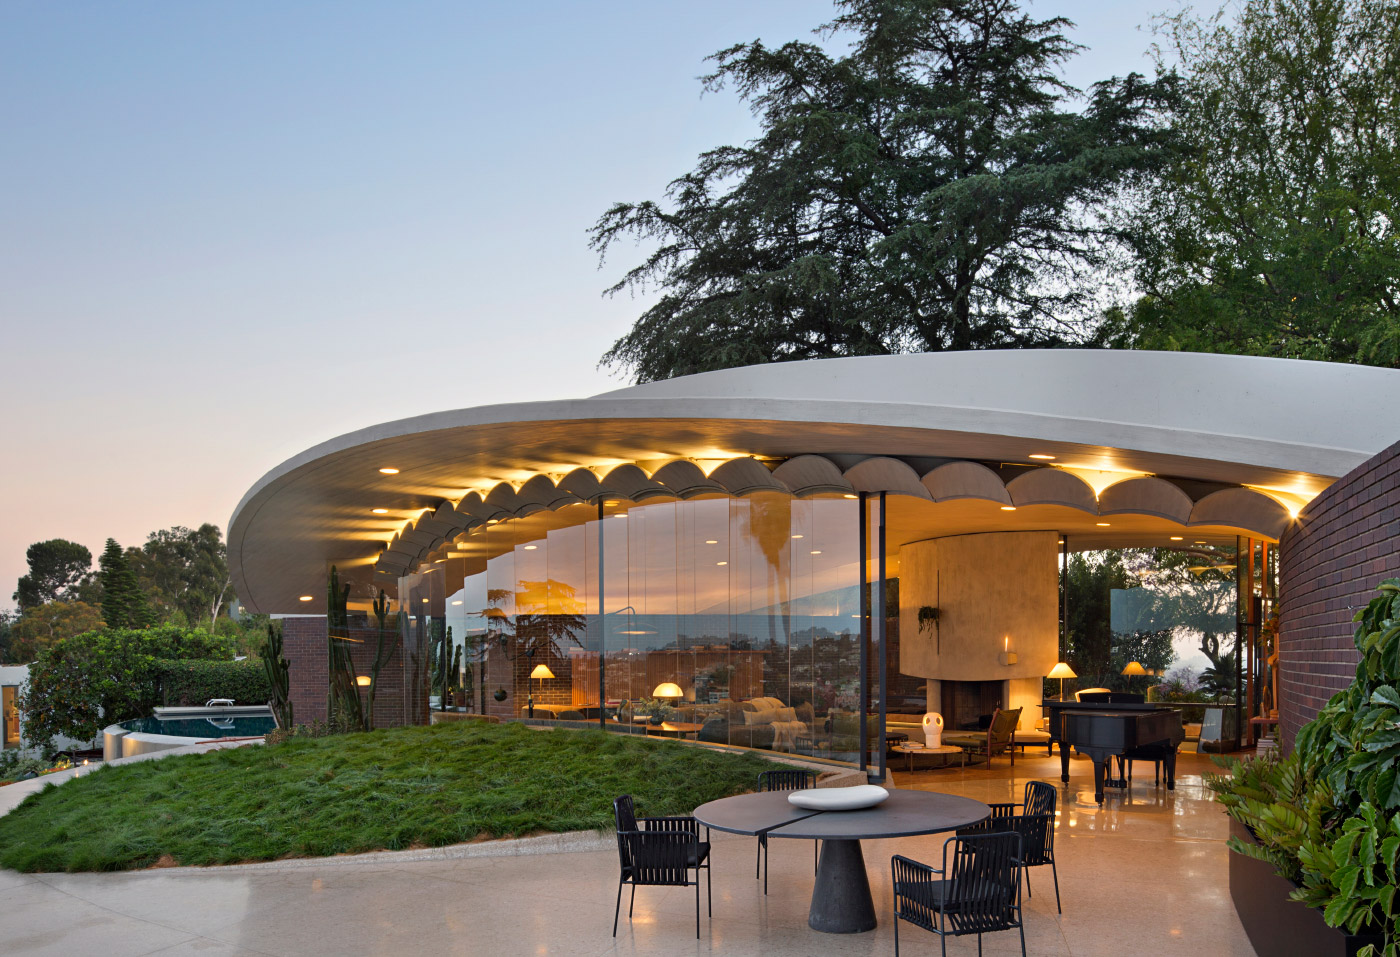 Photo of a glass-walled round house